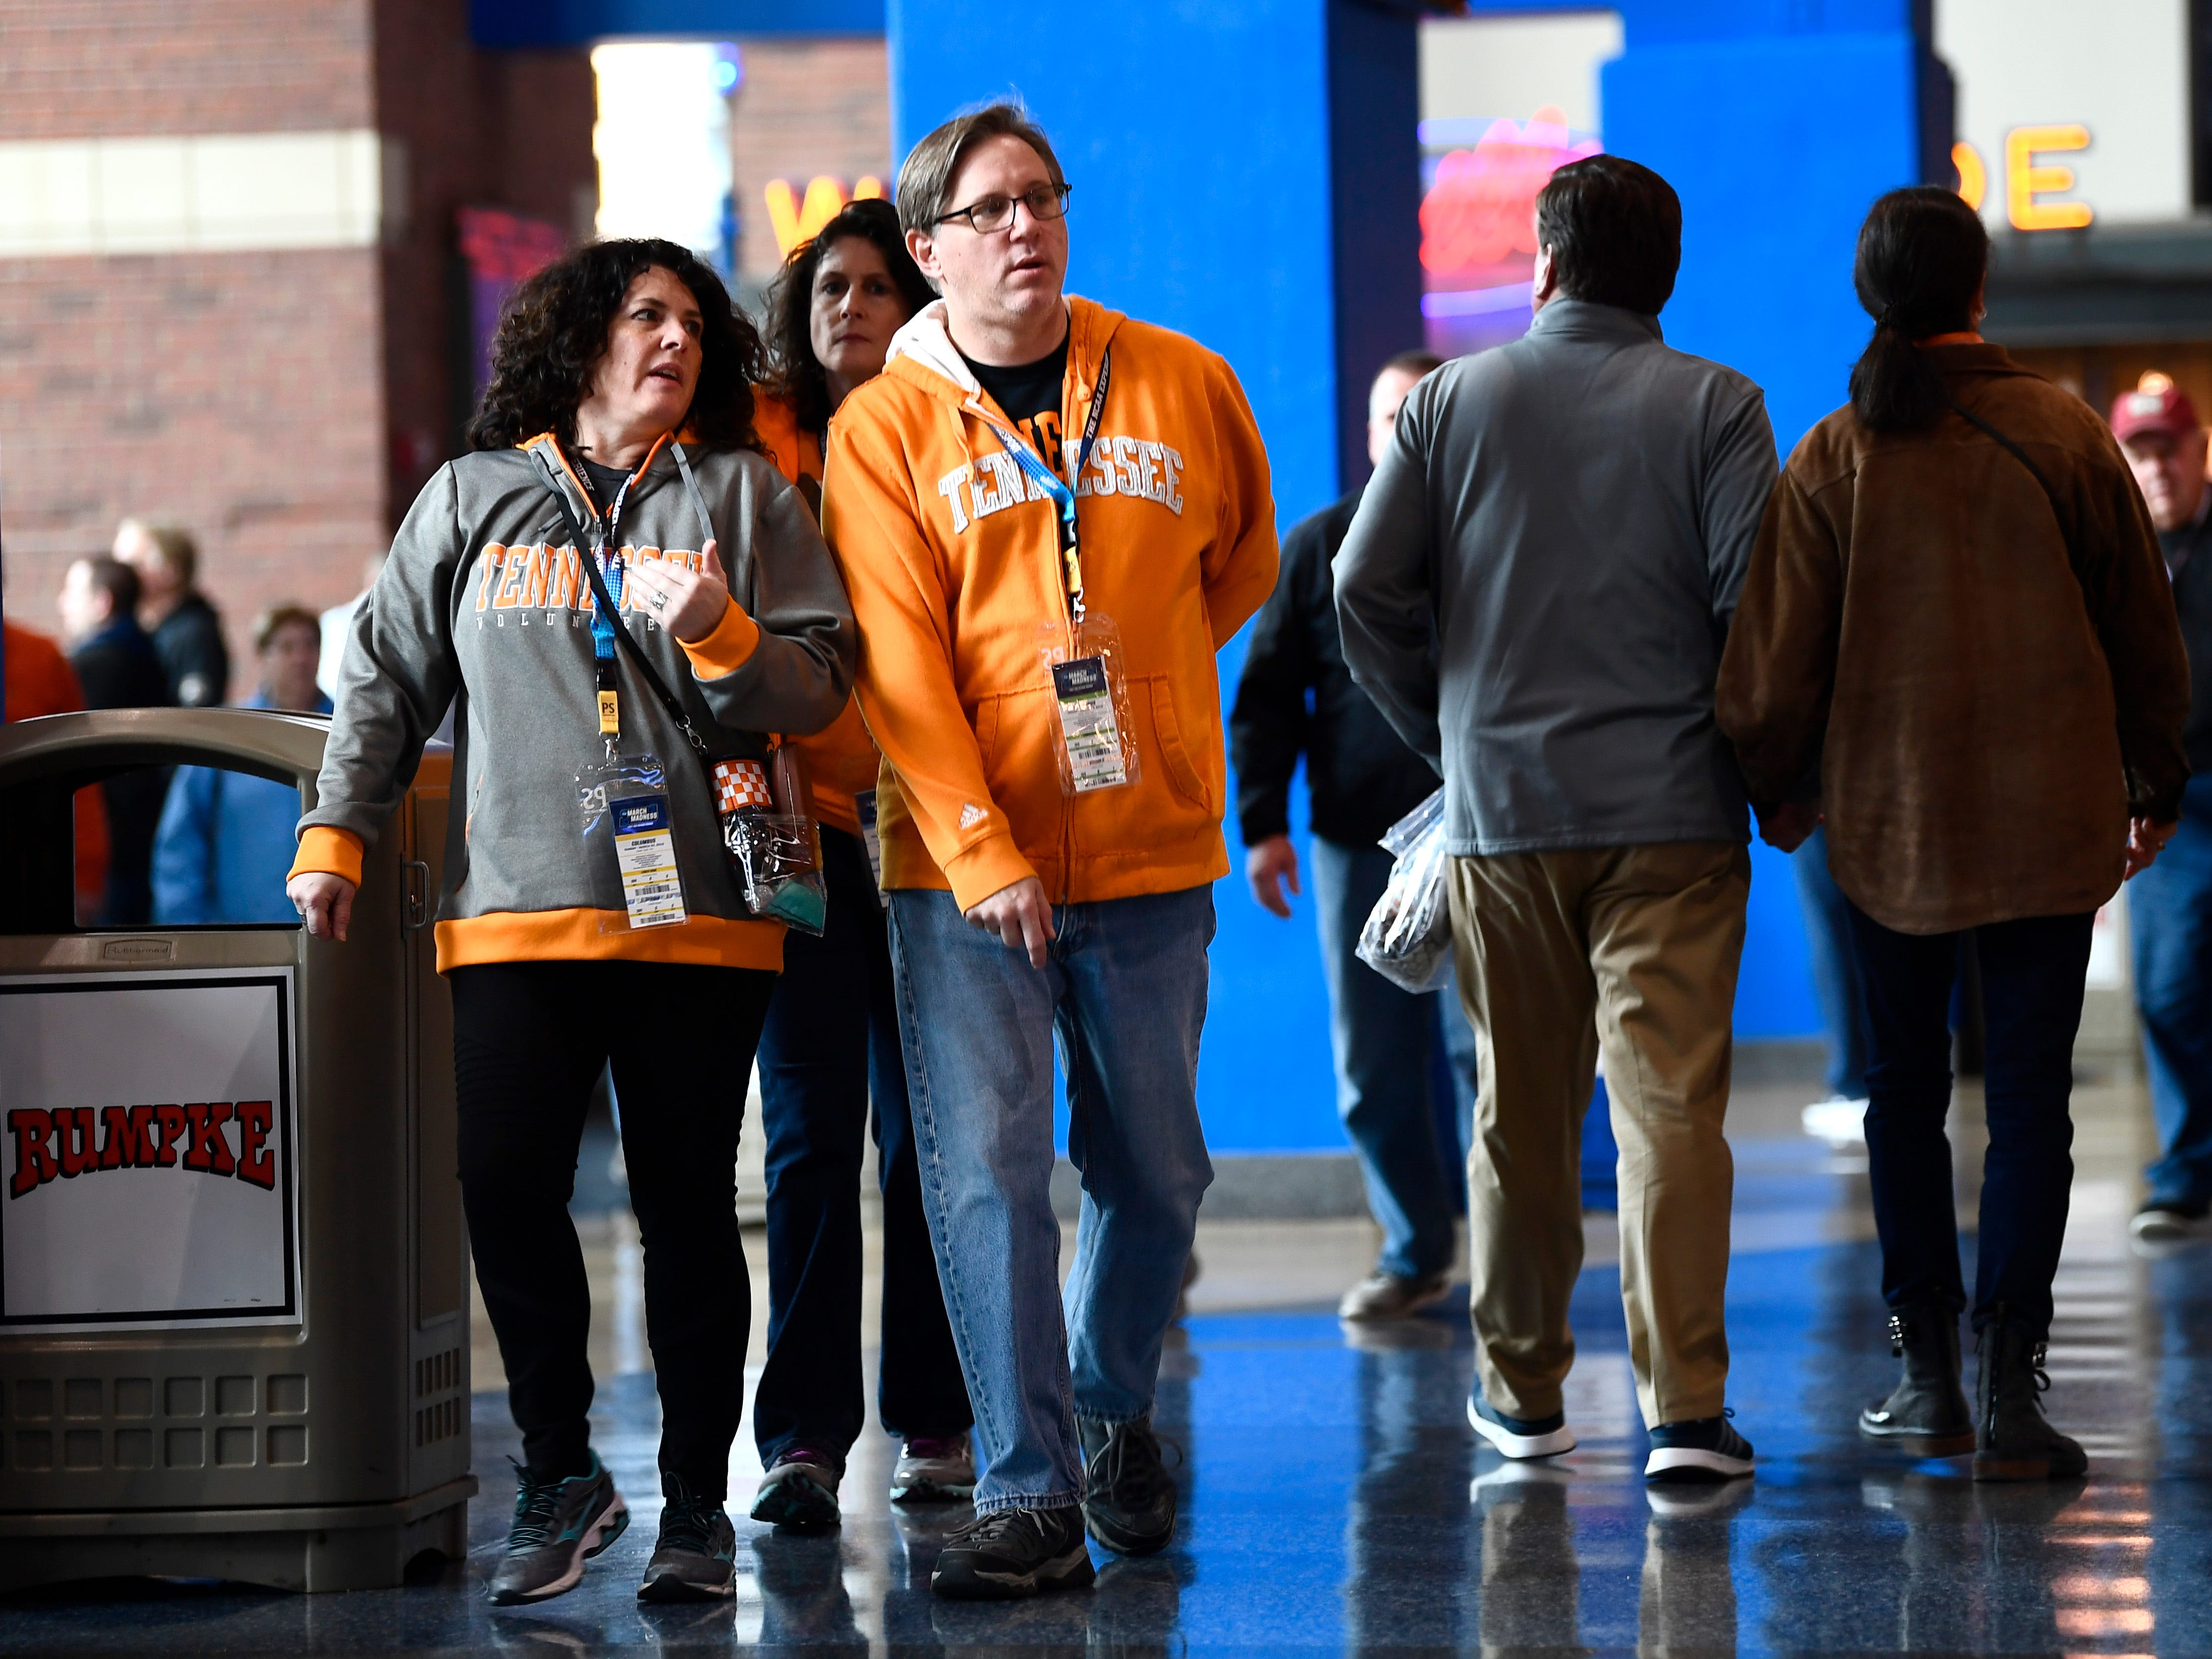 Fans walk the concourse before the start of the Tennessee VolunteersÕ game against the Iowa Hawkeyes in the second round of the NCAA Tournament at Nationwide Arena in Columbus, Ohio, Sunday, March 24, 2019.